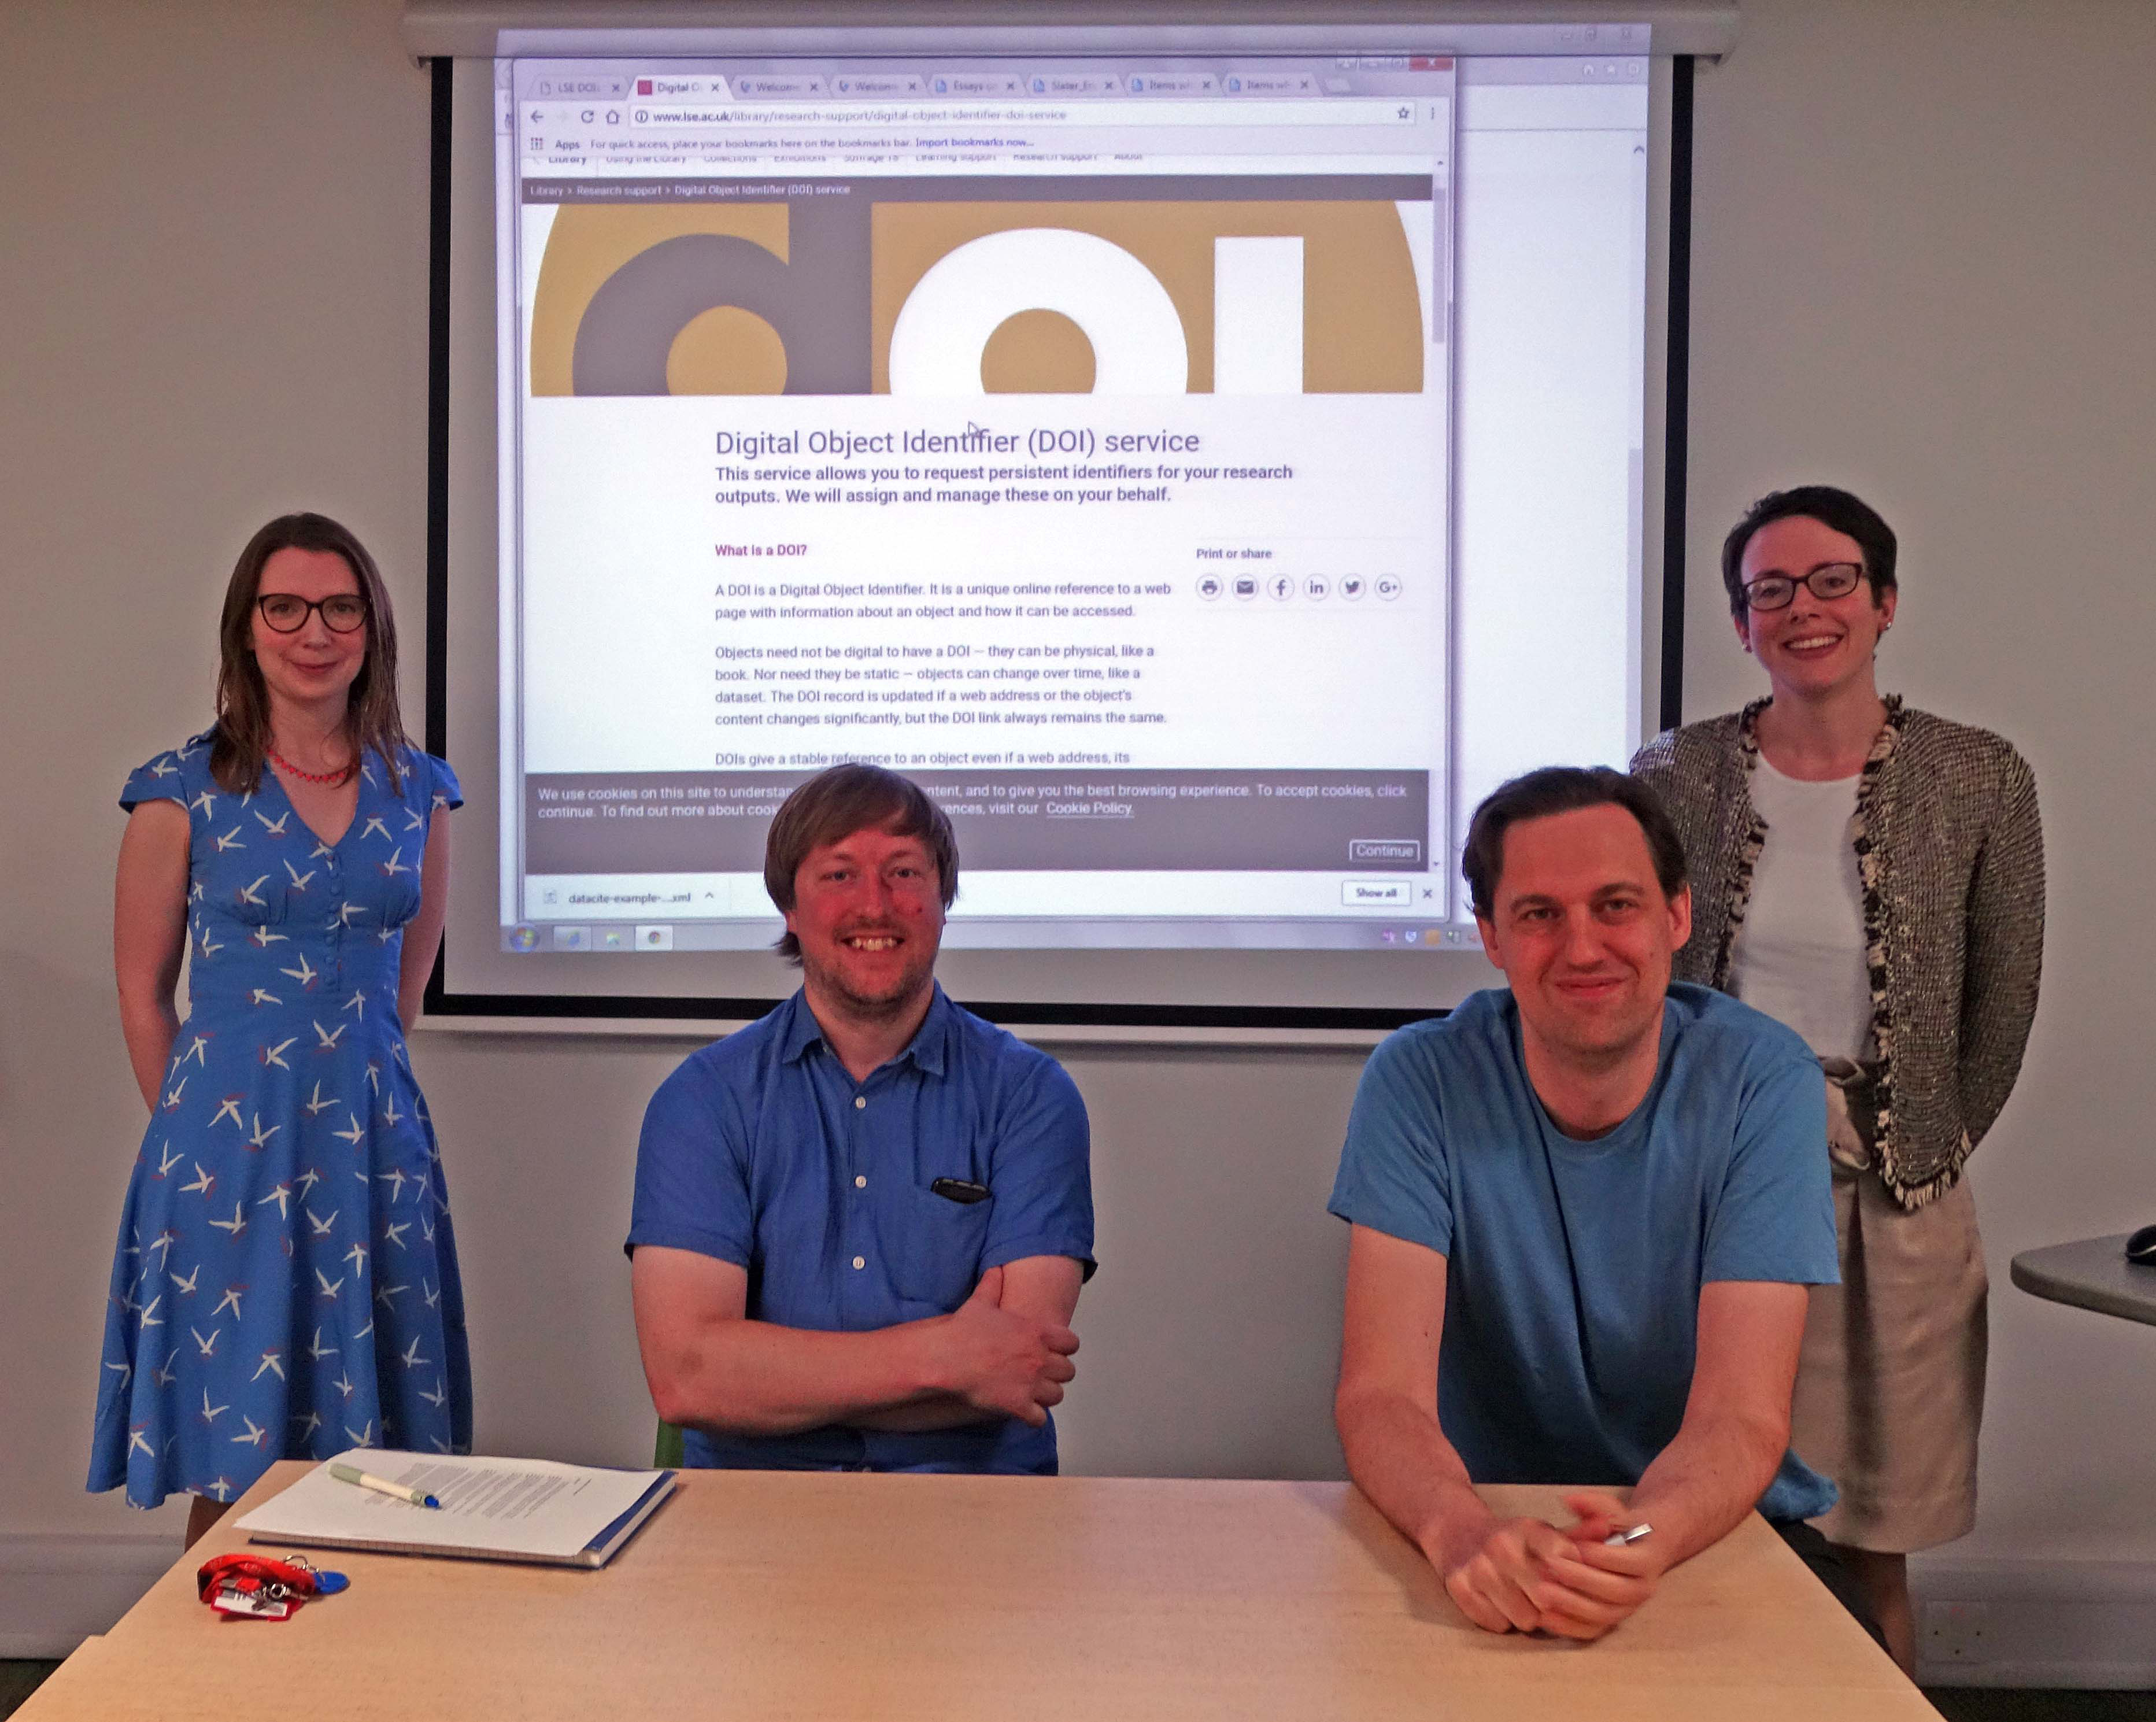 Clare Mulhall (Digital Library Assistant), Neil Stewart (Digital Library Manager), Laurence Horton (Data Librarian), and Nancy Graham (Research Support Manager)